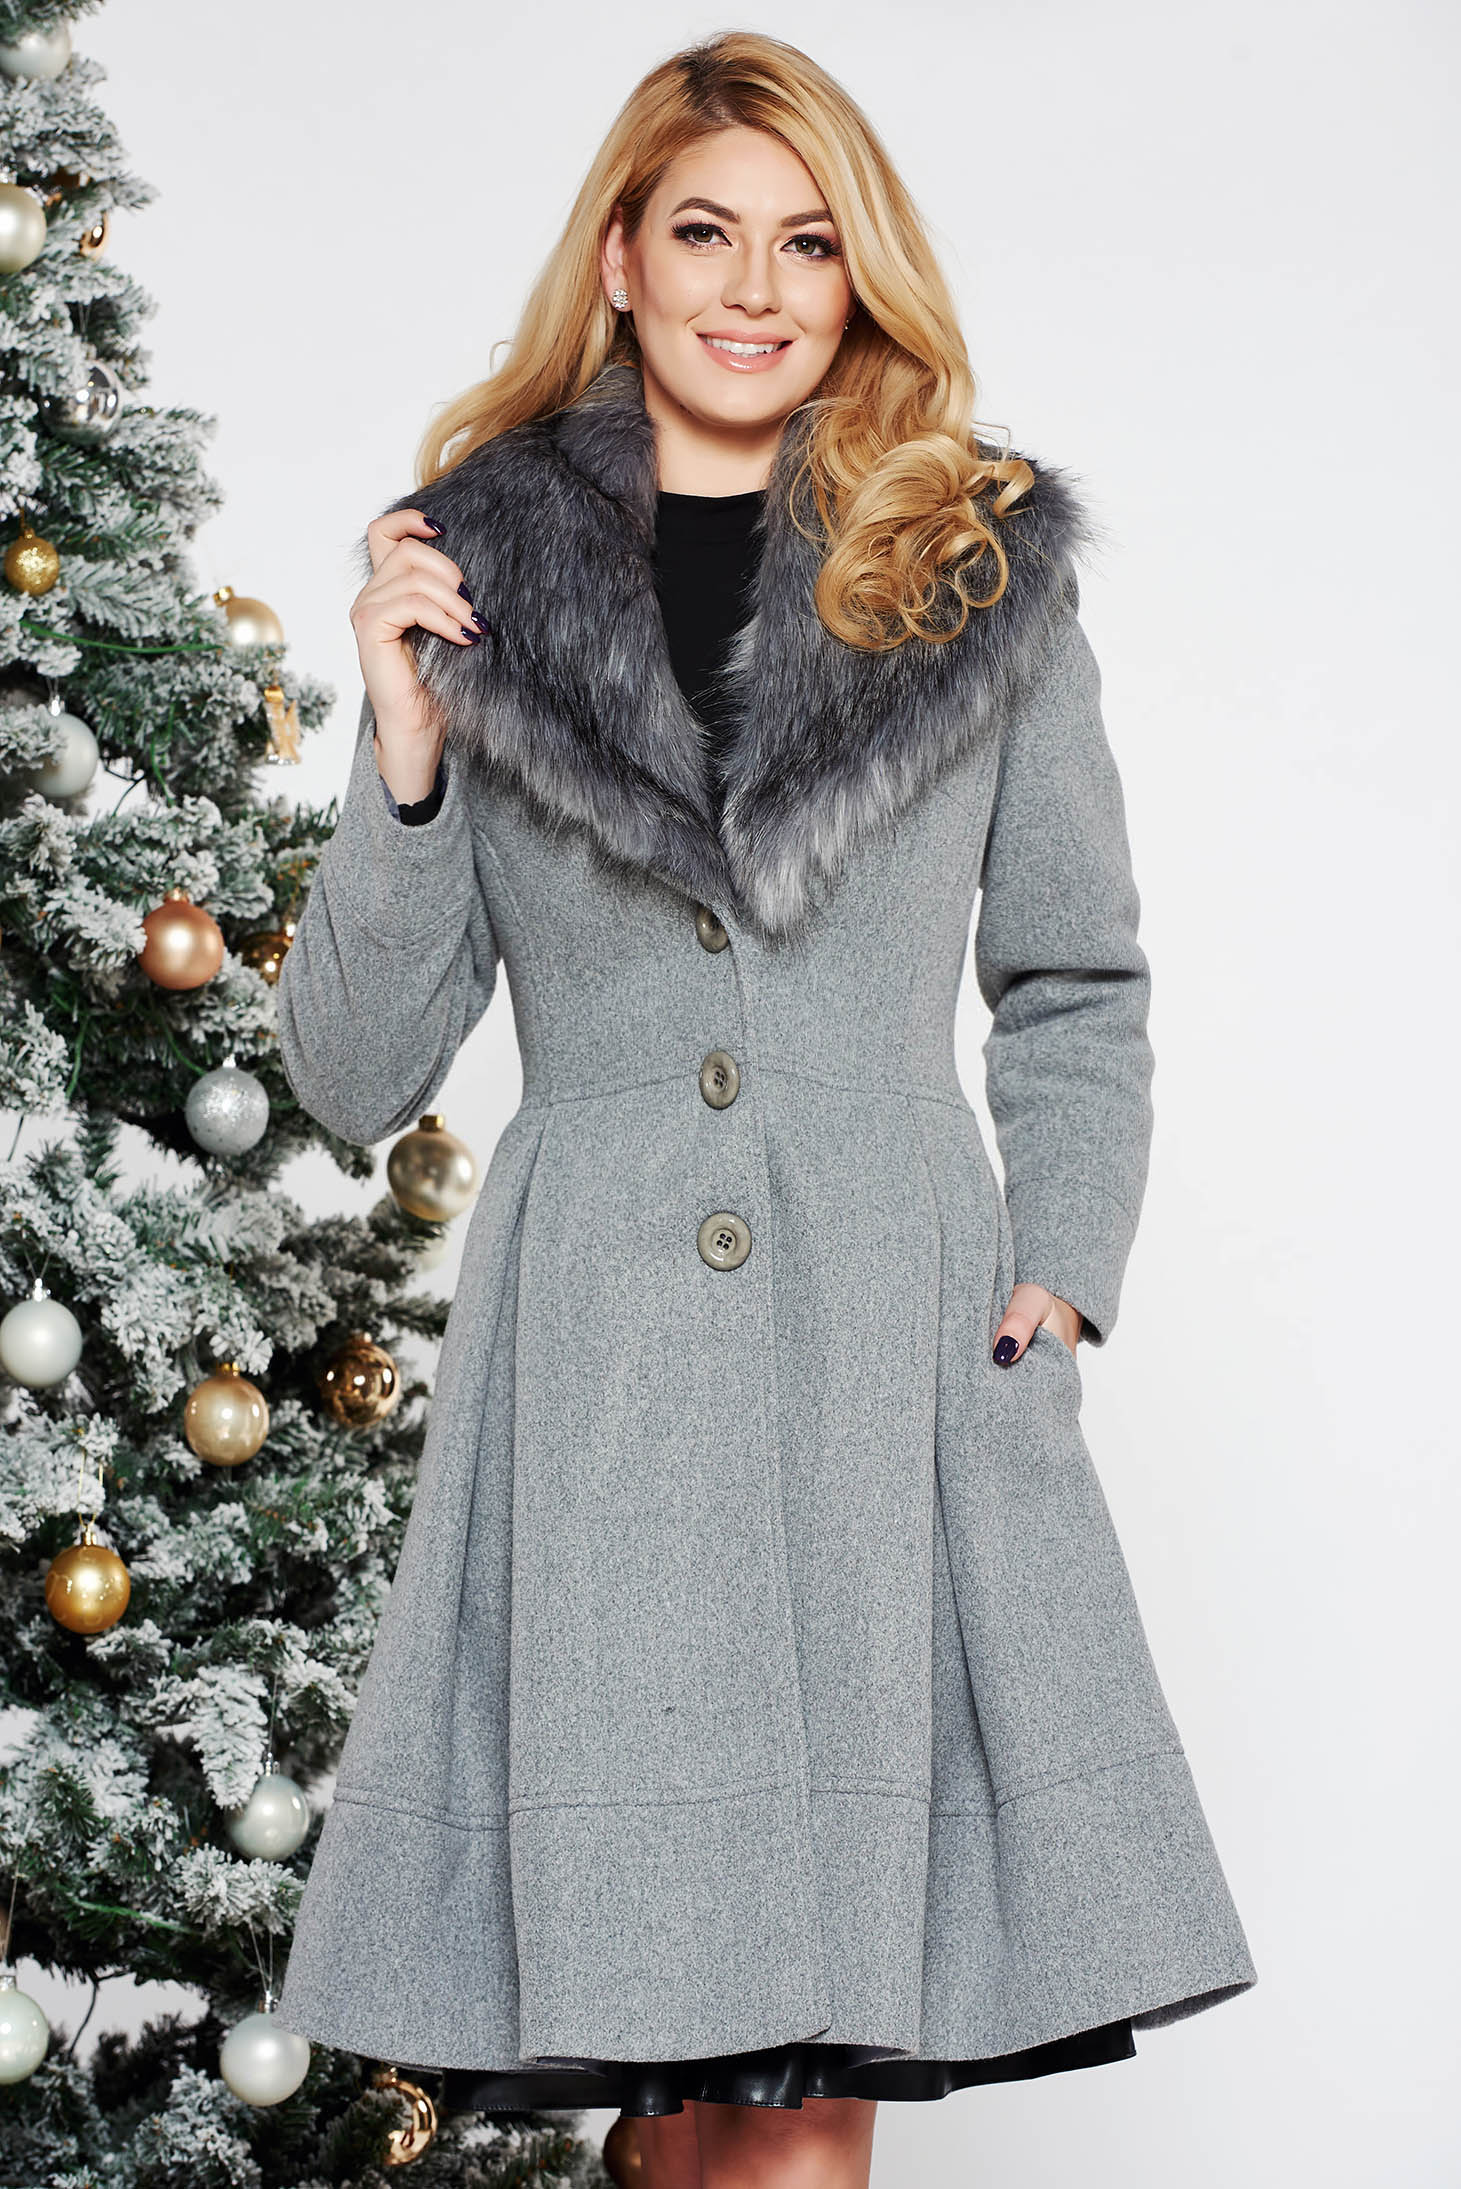 LaDonna grey elegant cloche coat from wool with detachable faux fur insertions